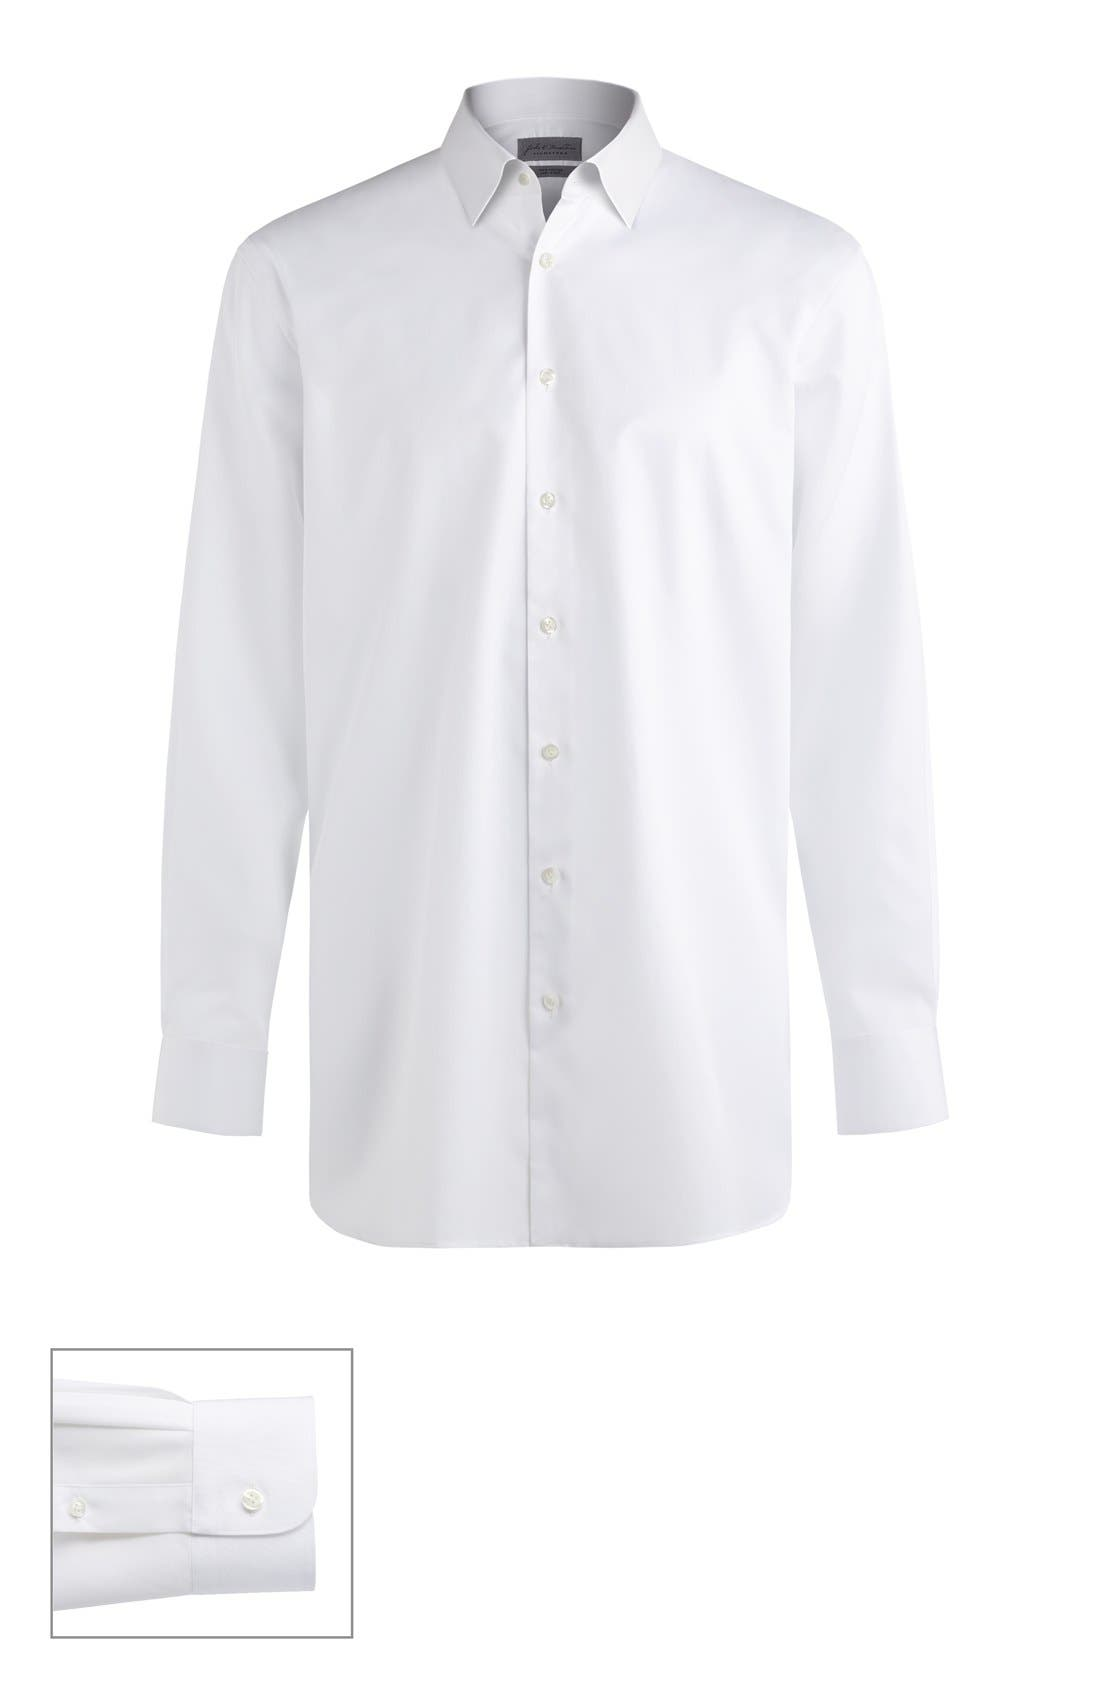 John W. Nordstrom® Made to Measure Traditional Fit Straight Collar Solid Dress Shirt